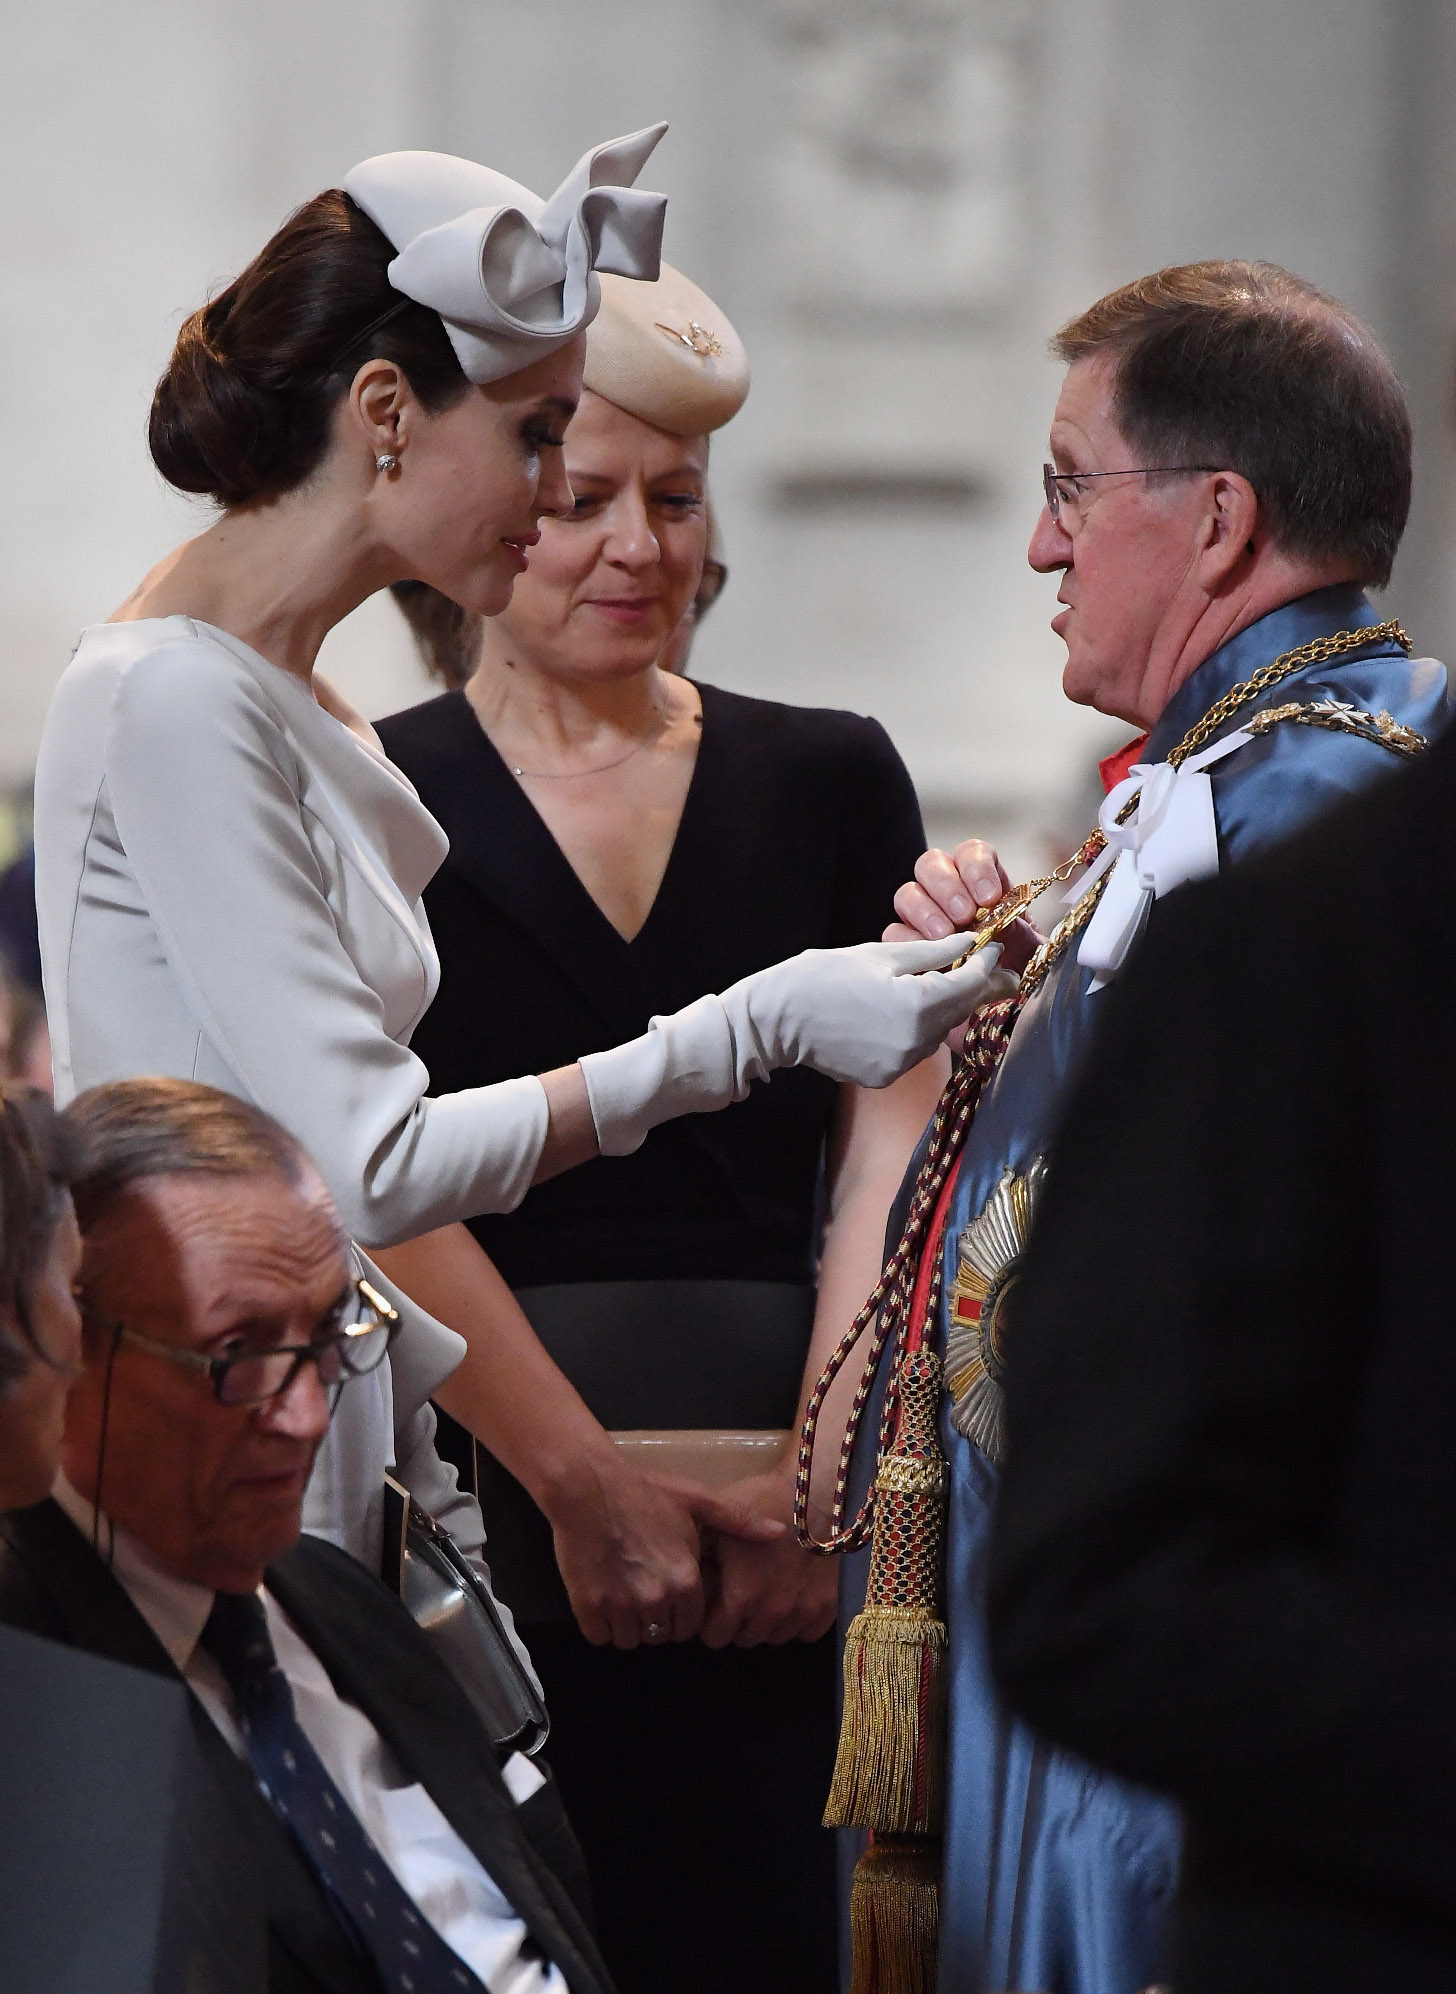 LONDON, ENGLAND - JUNE 28:  Actress and director Angelina Jolie looks at a part of the formal robes of George Robertson after arriving ahead of the Order Of St George 200th Anniversary Service at St Paul's Cathedral on June 28, 2018 in London, England.  (Photo by Leon Neal/Getty Images)